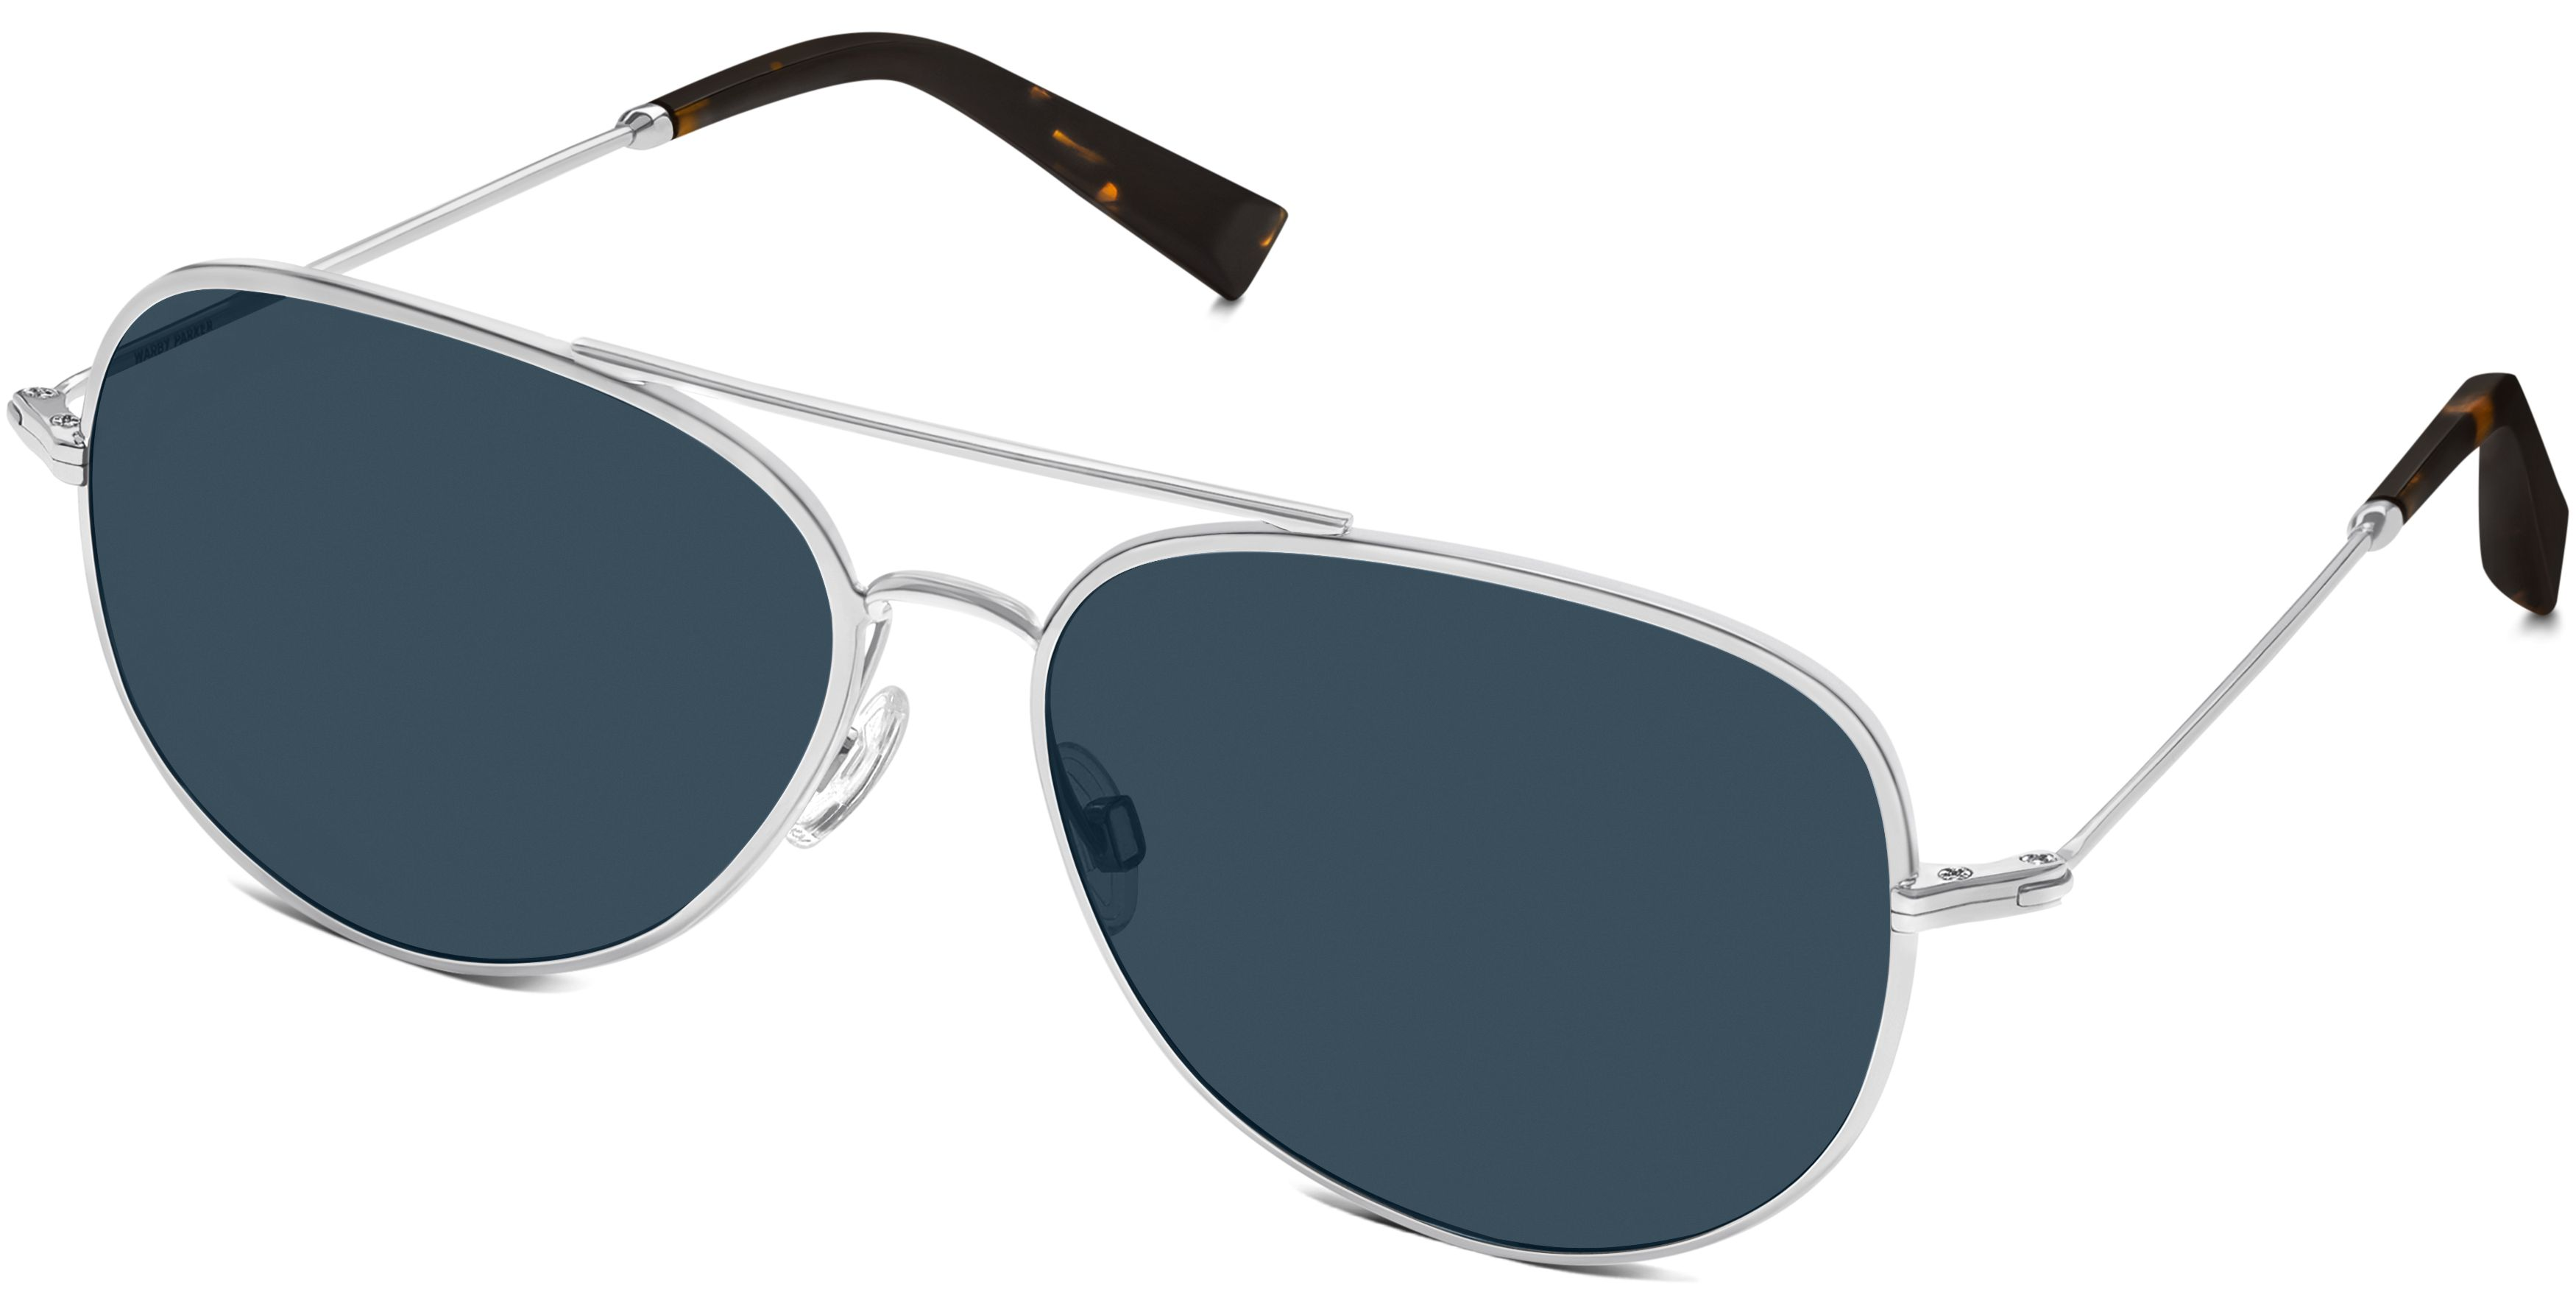 9c4d61fb7b Raider Sunglasses in Polished Silver with Vintage Blue lenses for Women